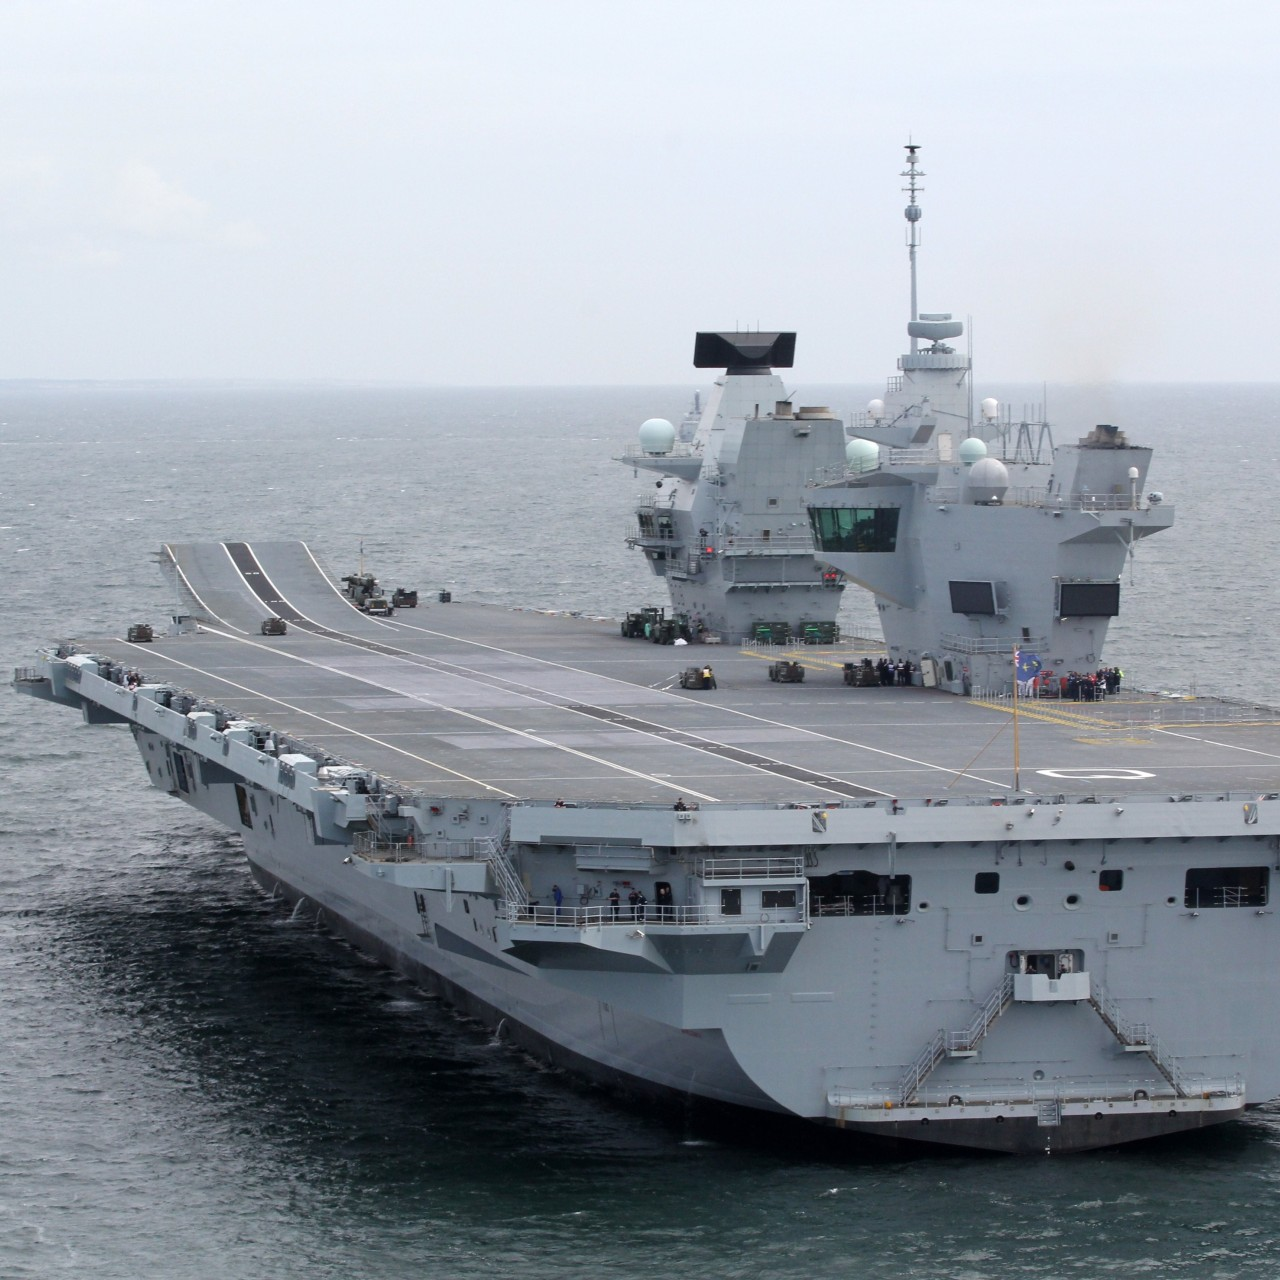 Britain's naval ambitions to once again rule the waves are